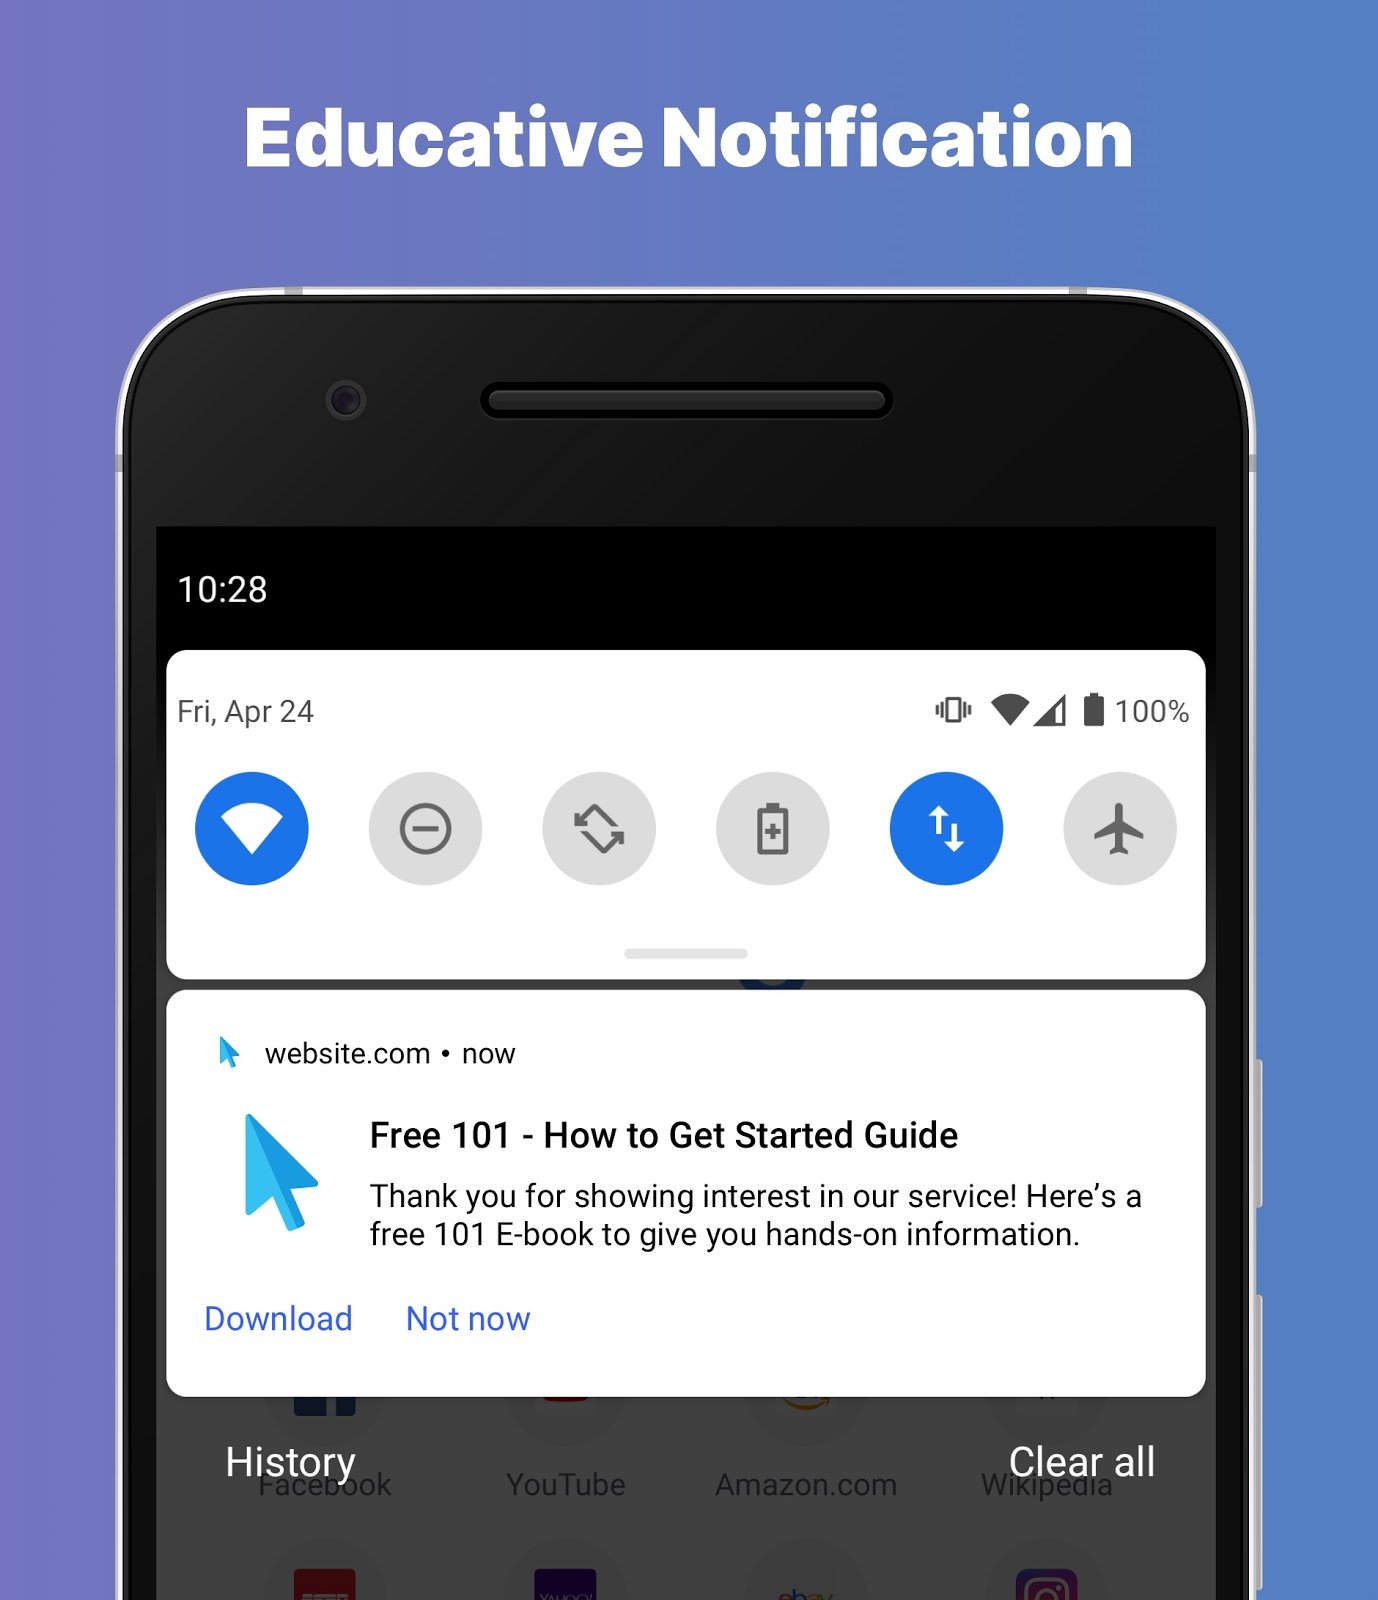 Example of an educative push notification